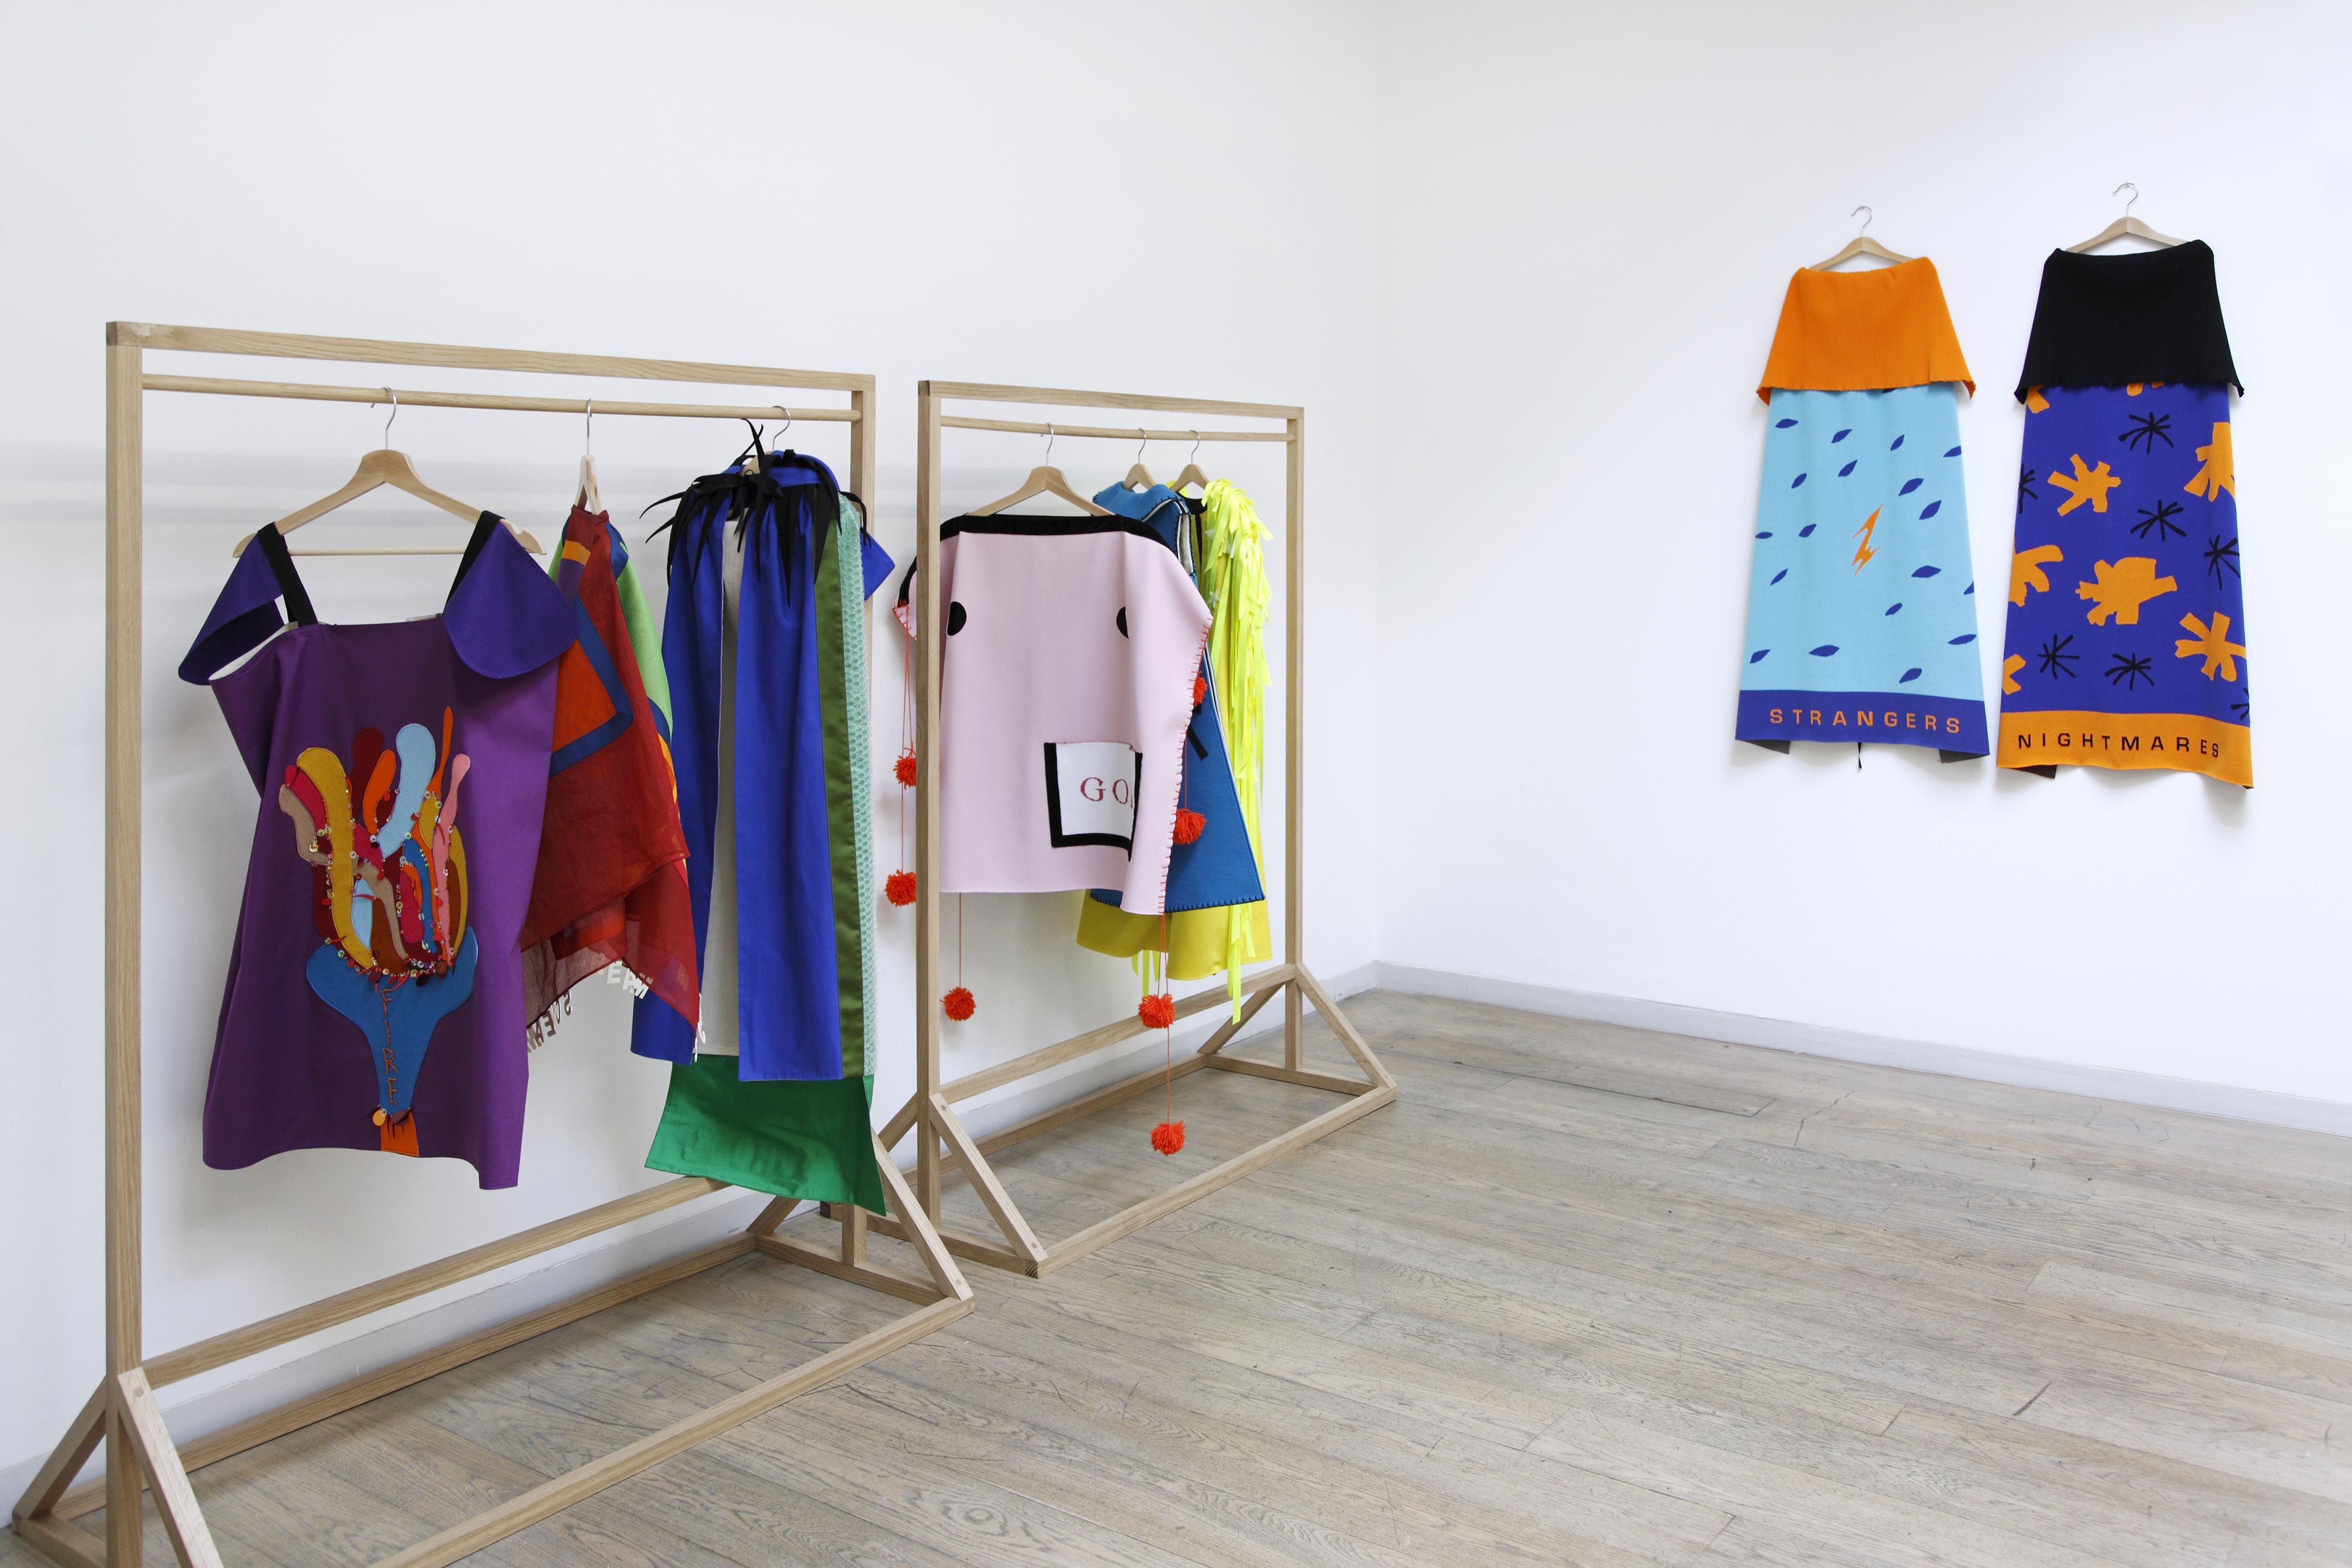 Rivane Neuenschwander_Installation view at Whitechapel Gallery -photo Justyna Fedec (1)